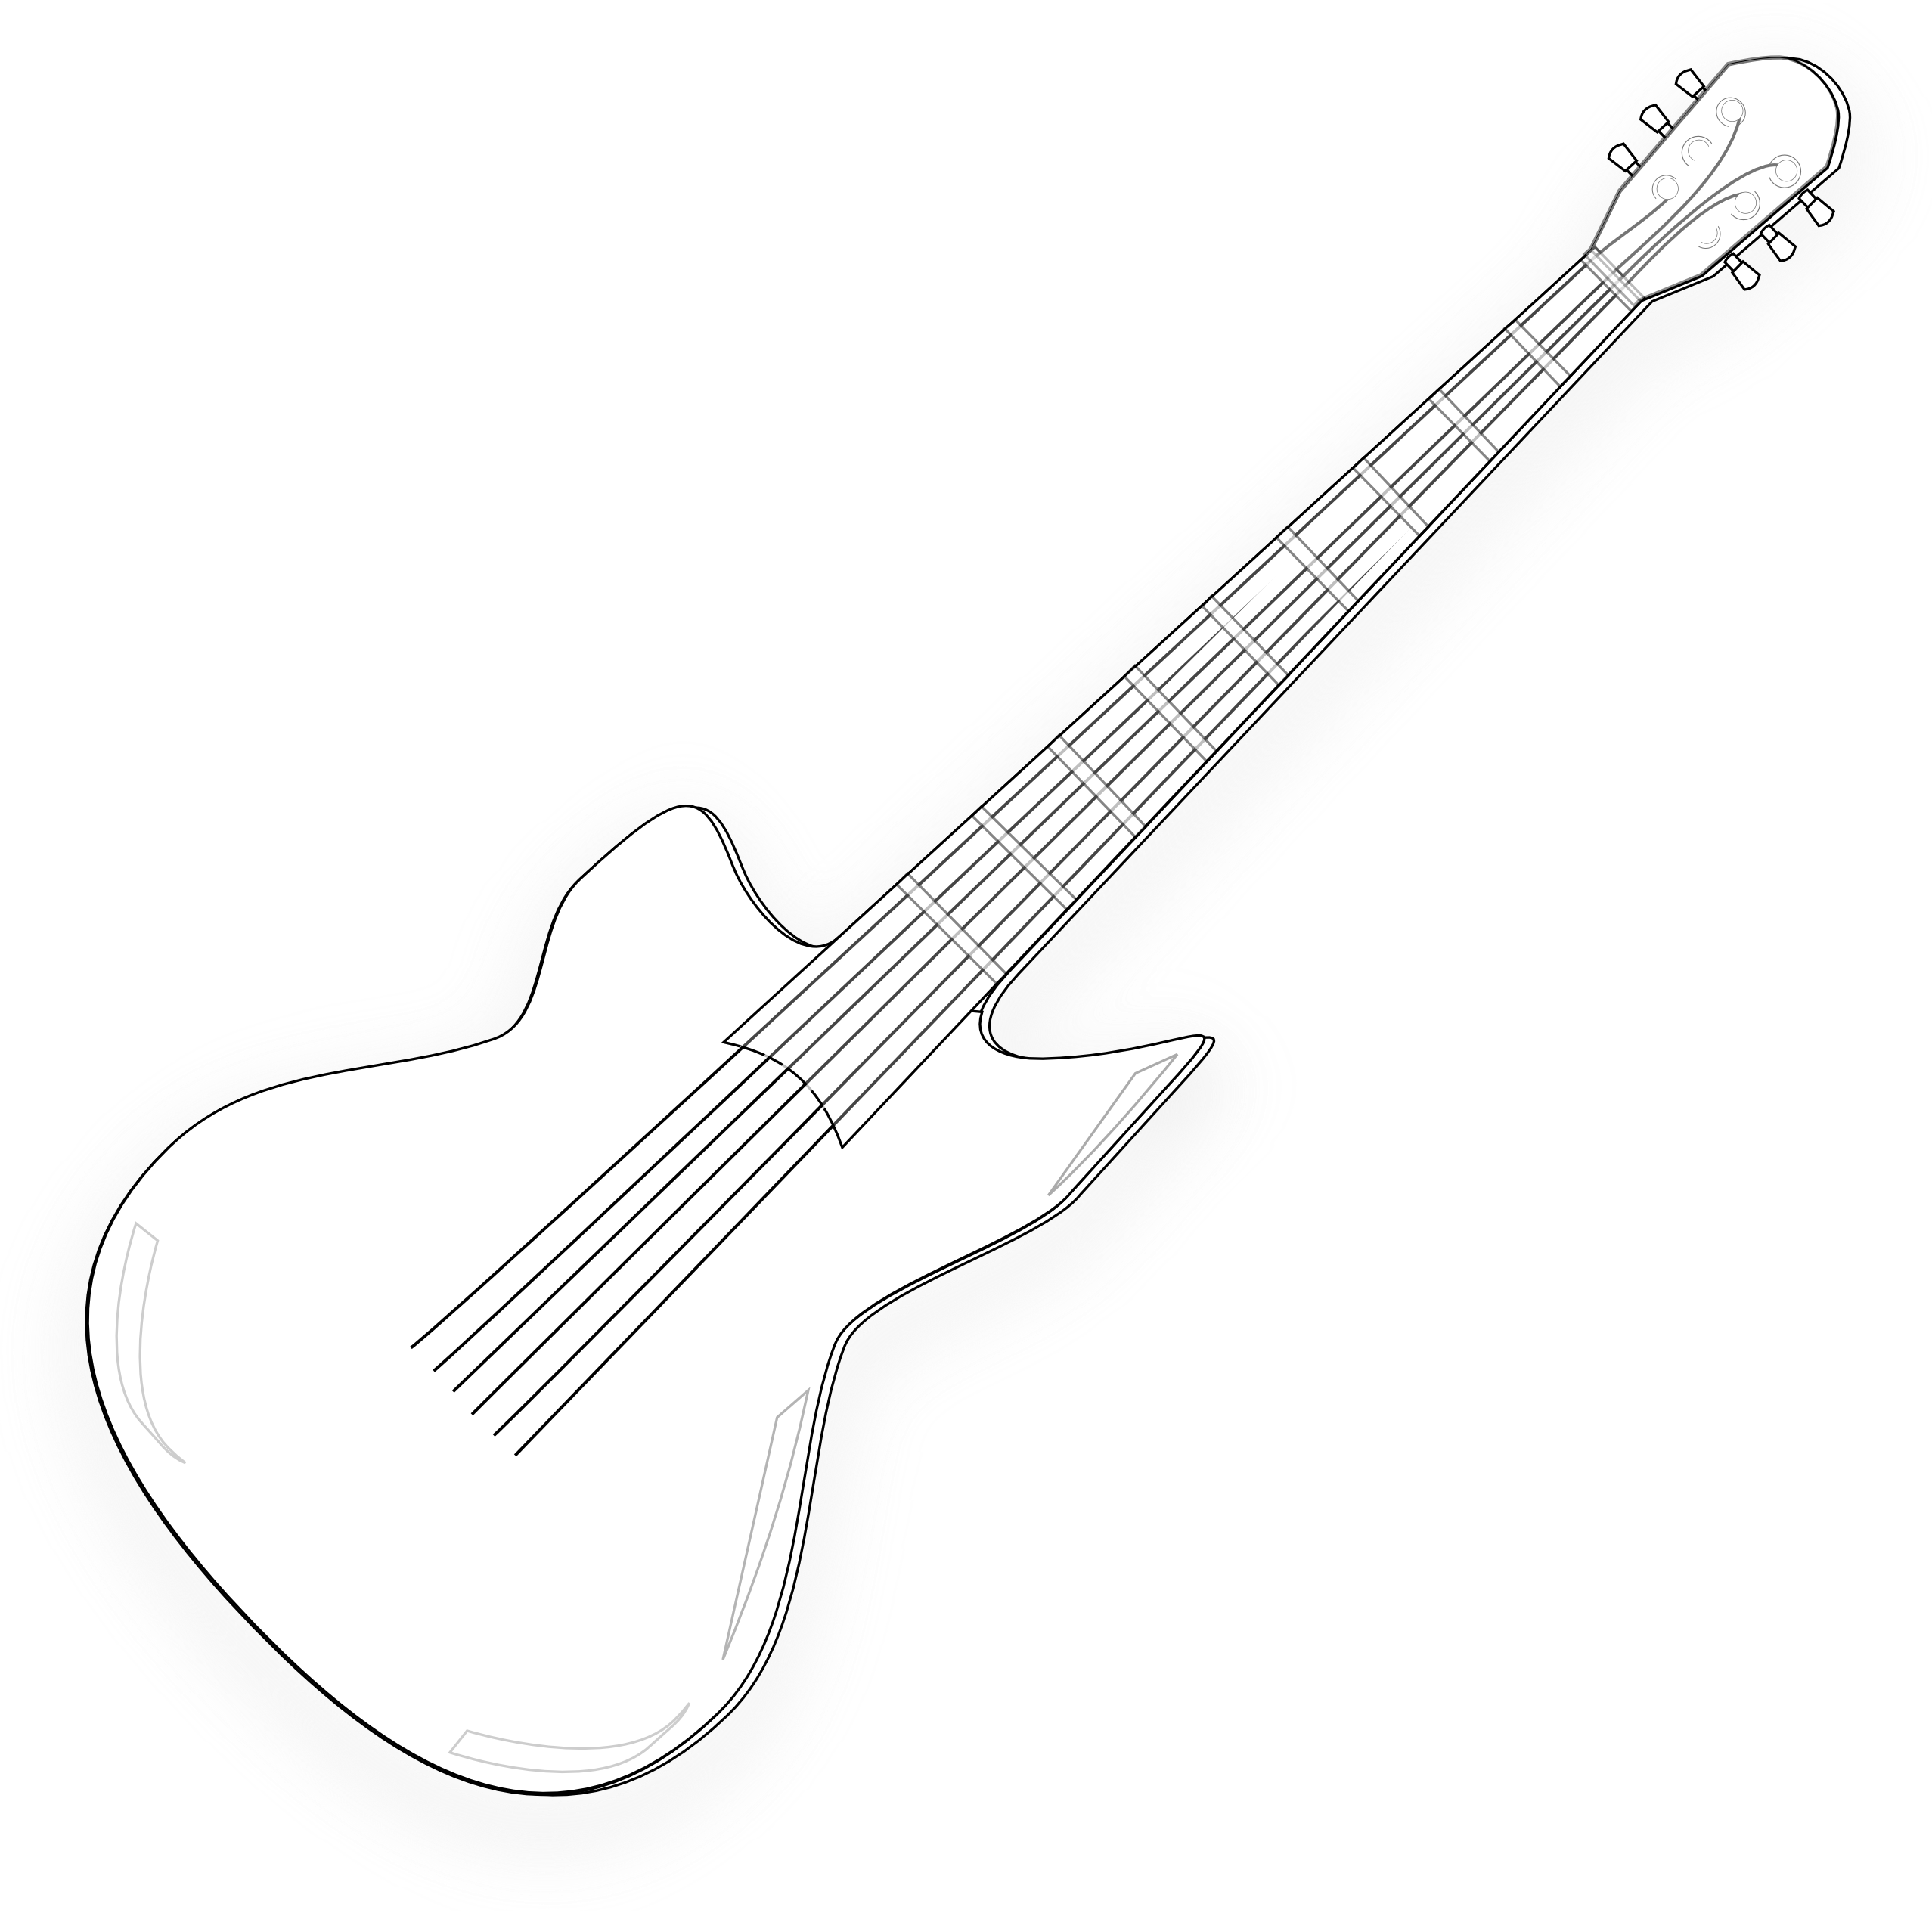 Drawing guitar music. Border clip art quotes